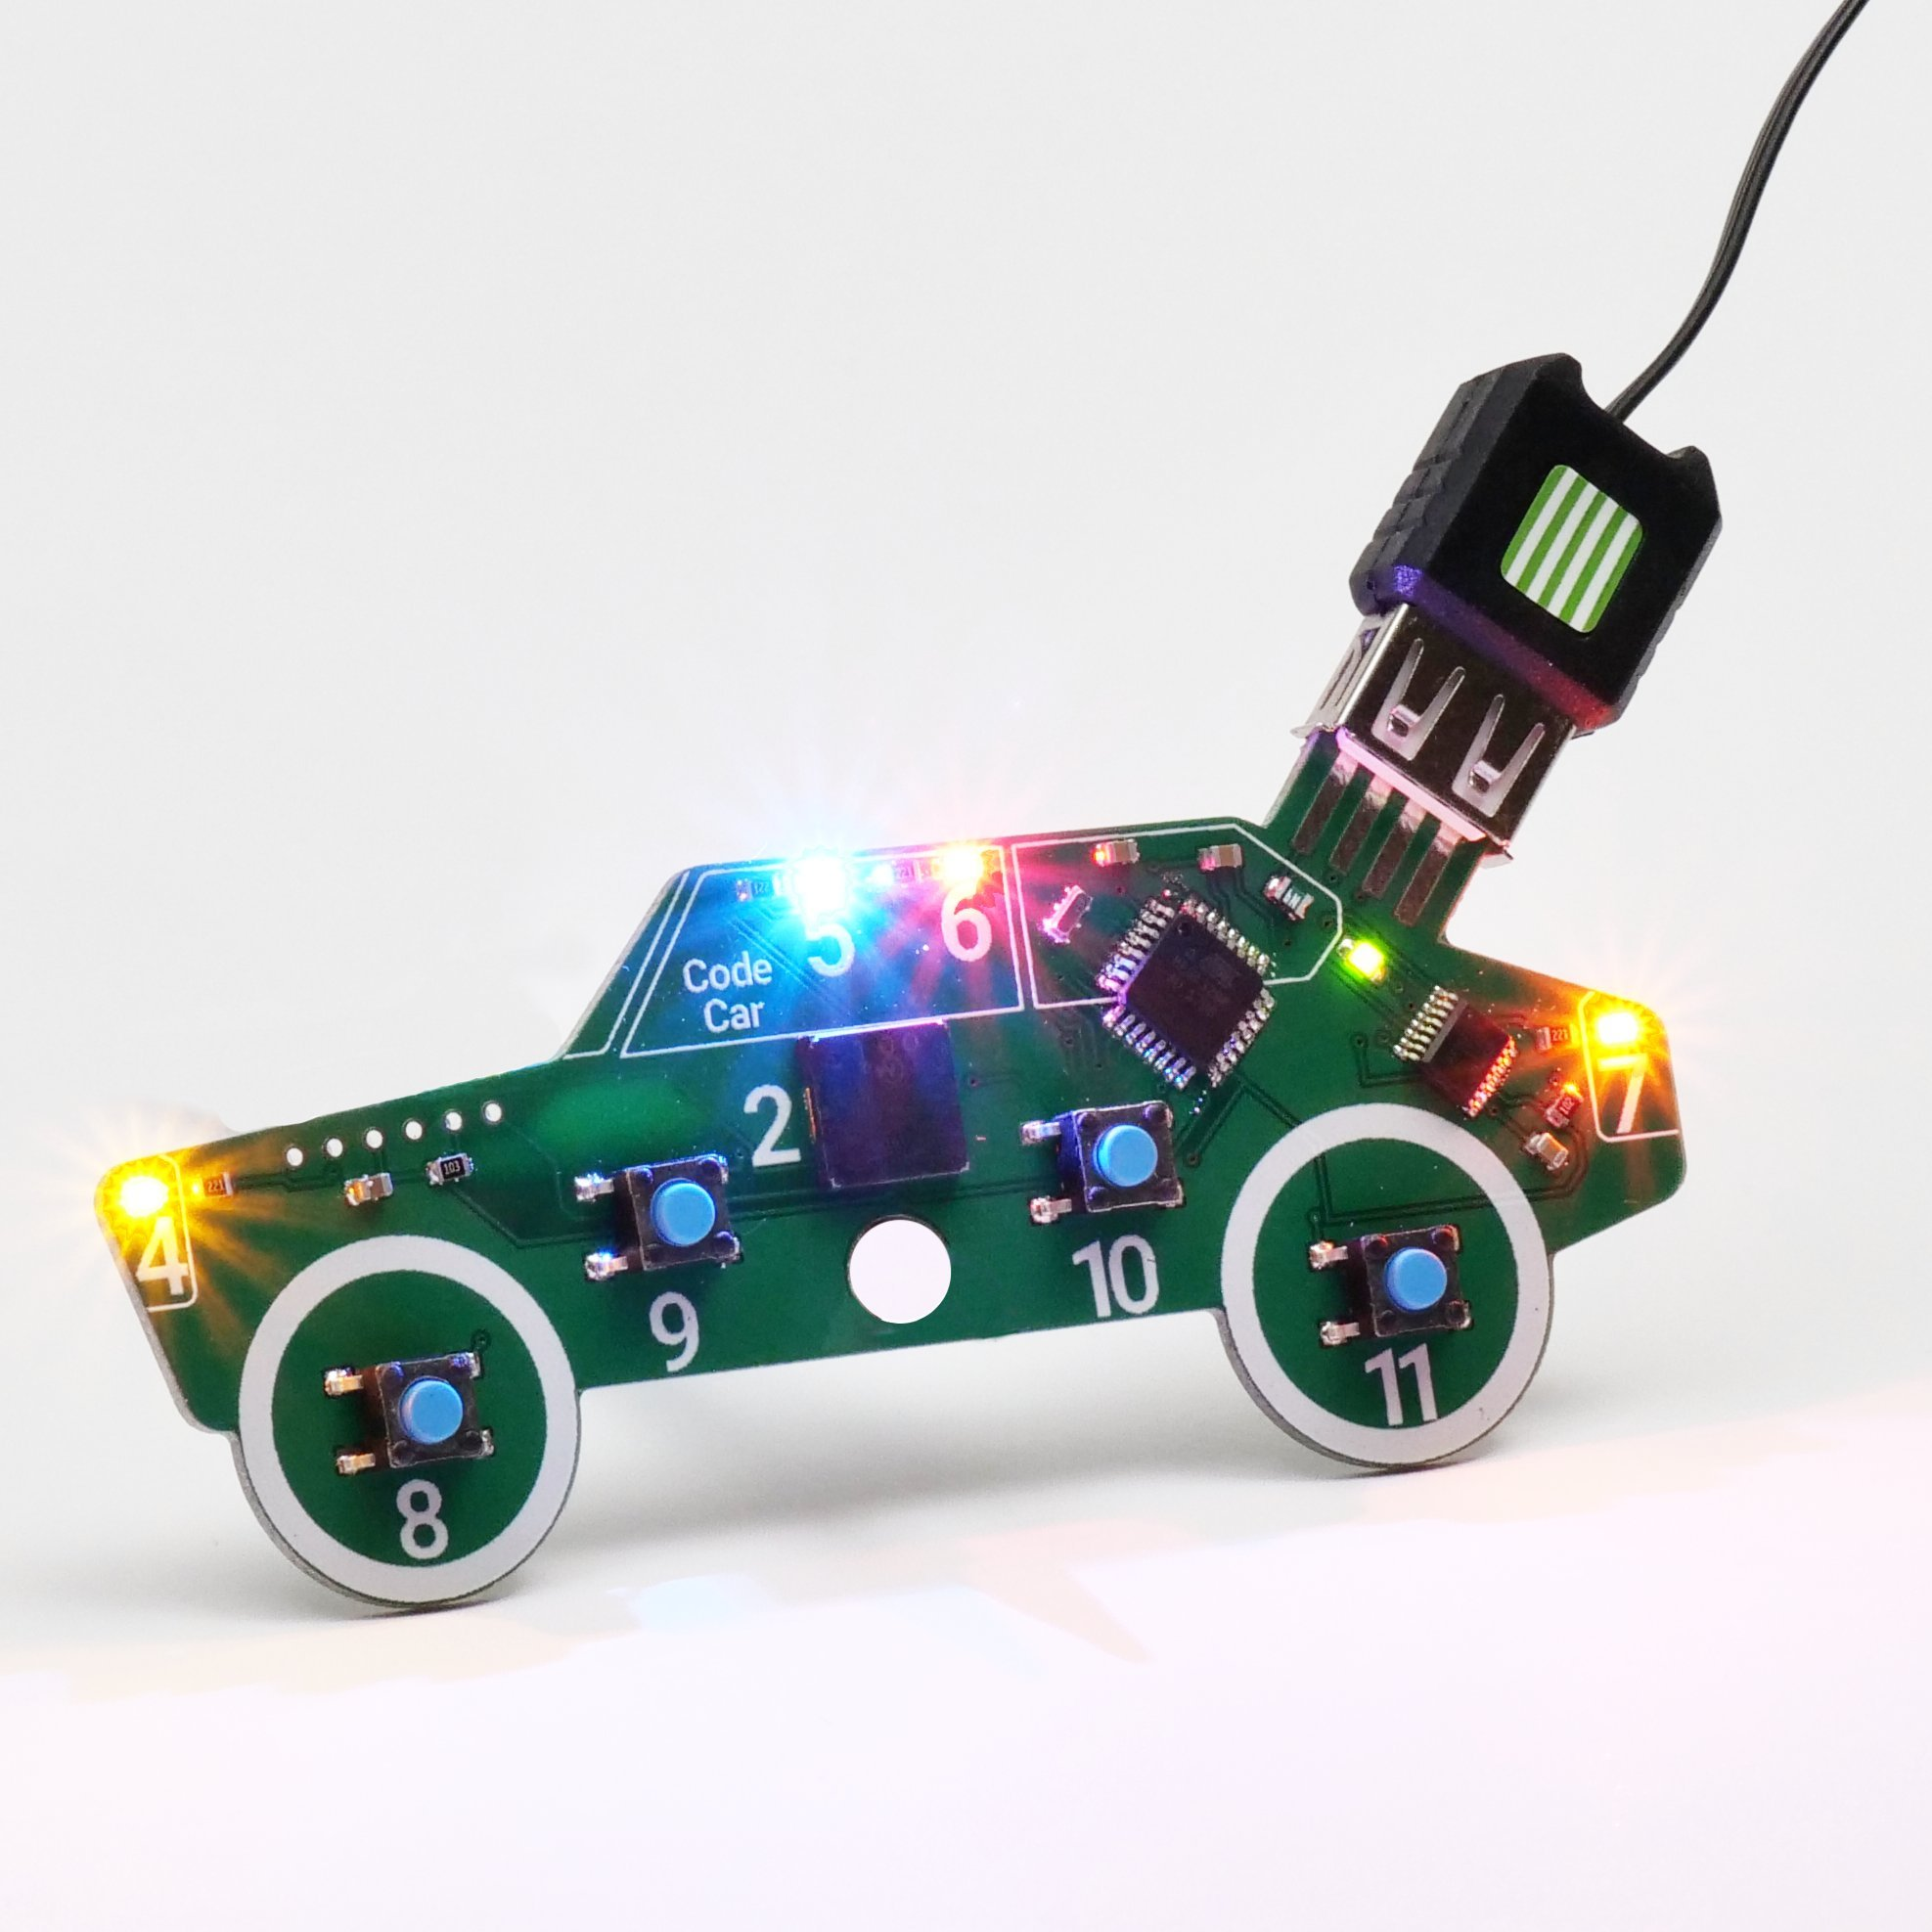 Code Car Toy for Kids Age 8-12 | Typed Coding for Beginners | Free Project Guides Included